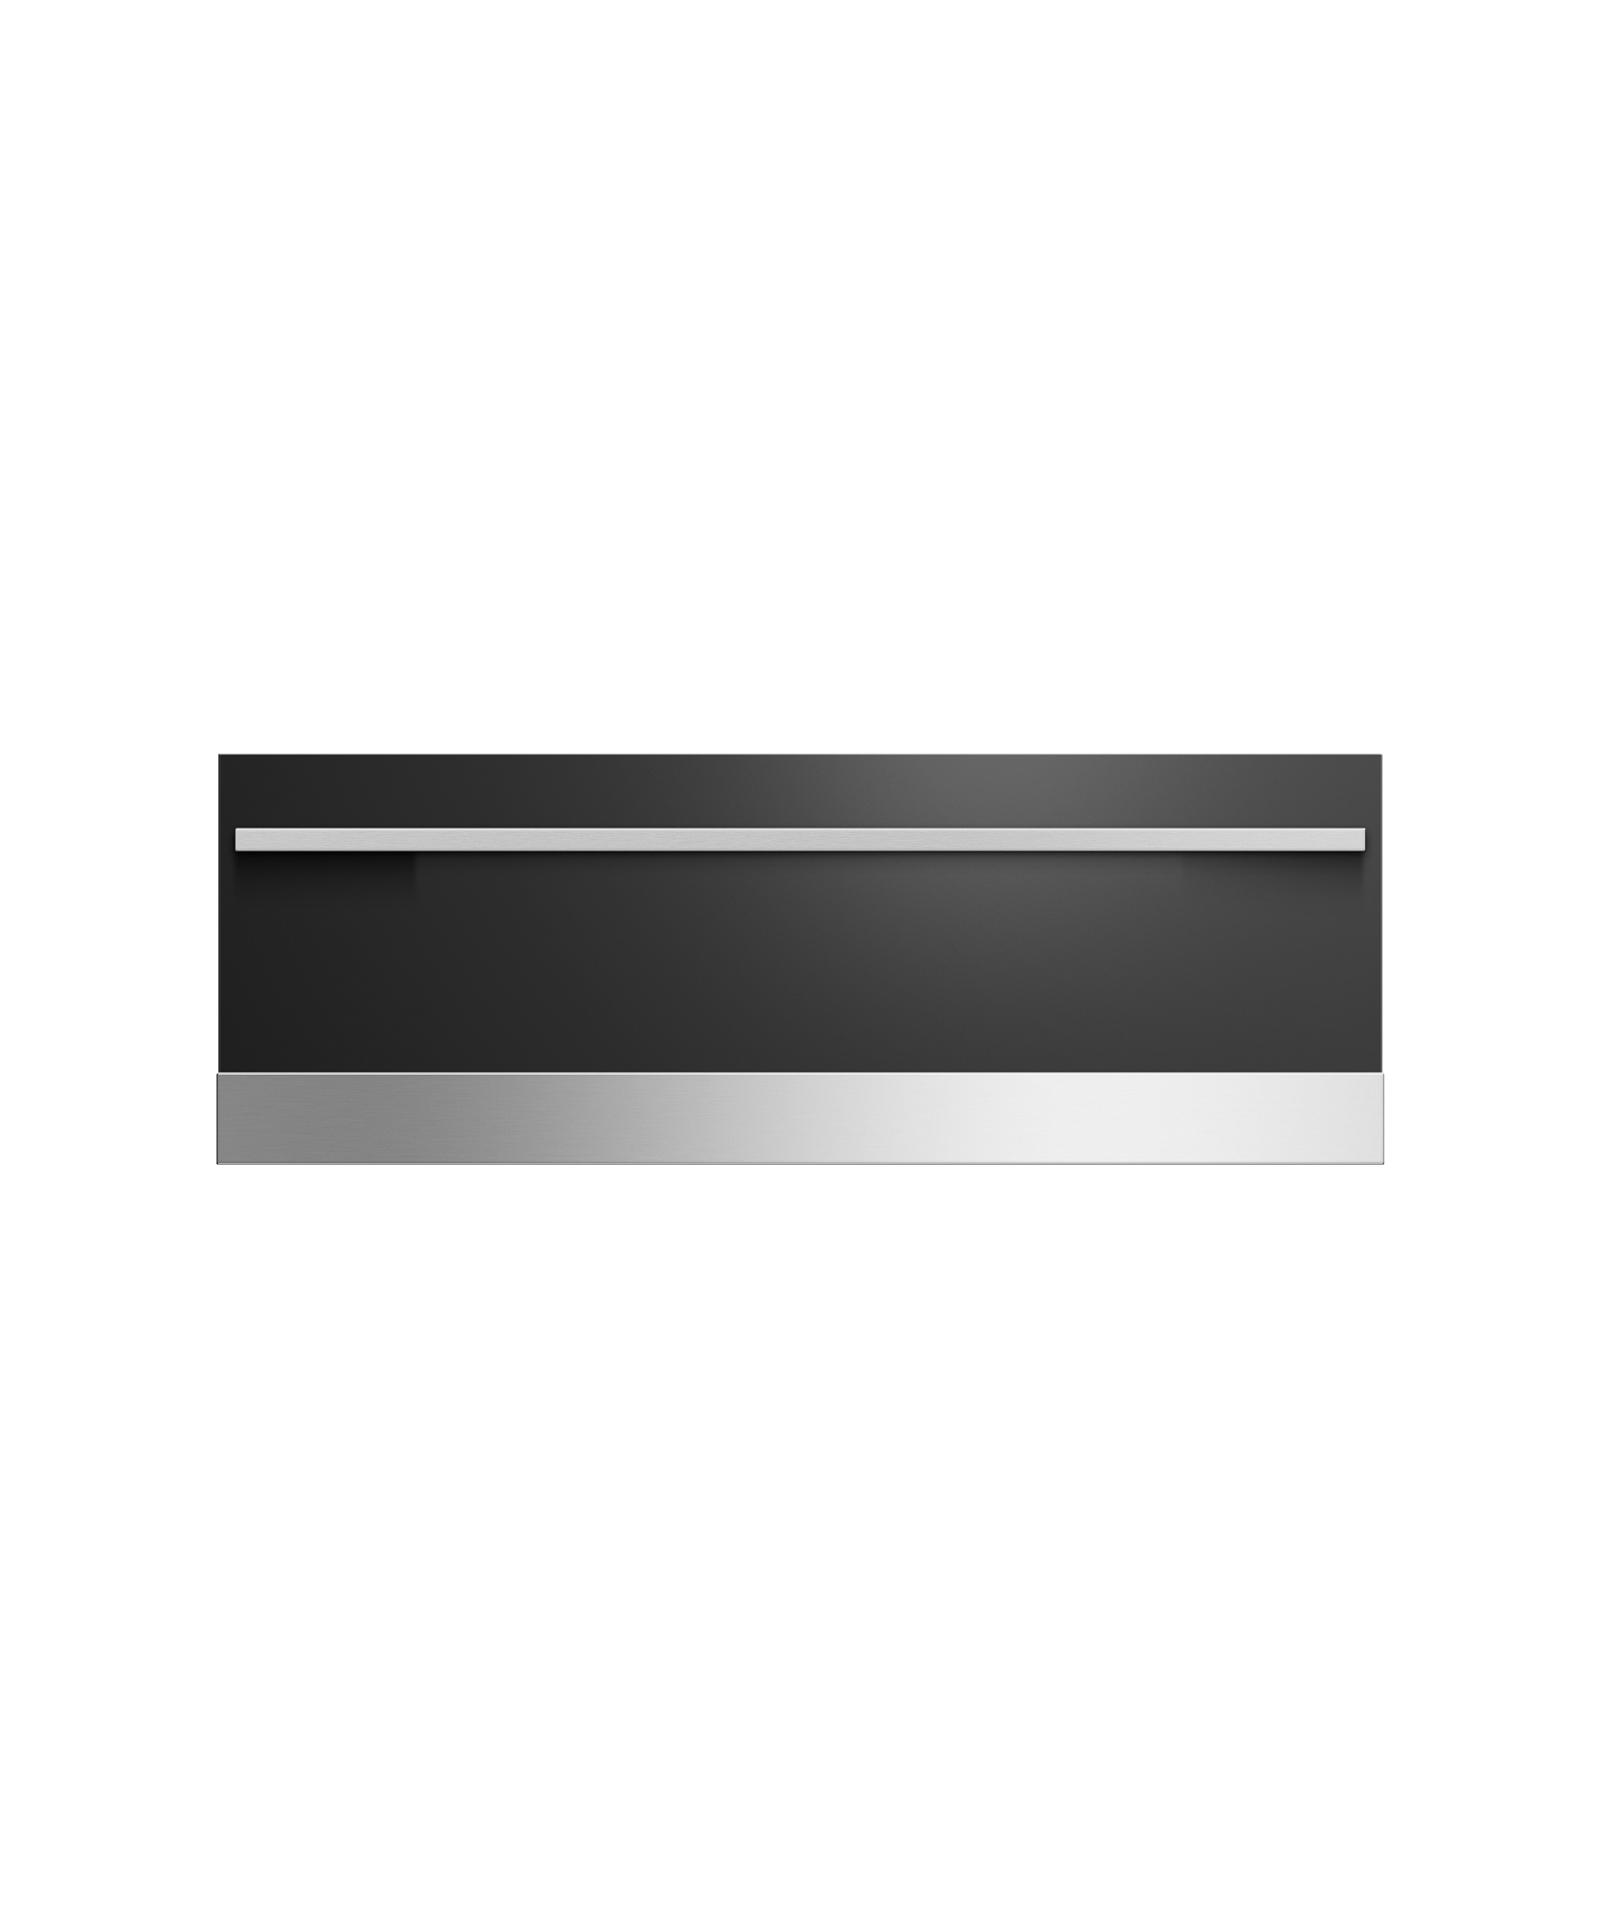 "Fisher and Paykel 30"" Warming Drawer"